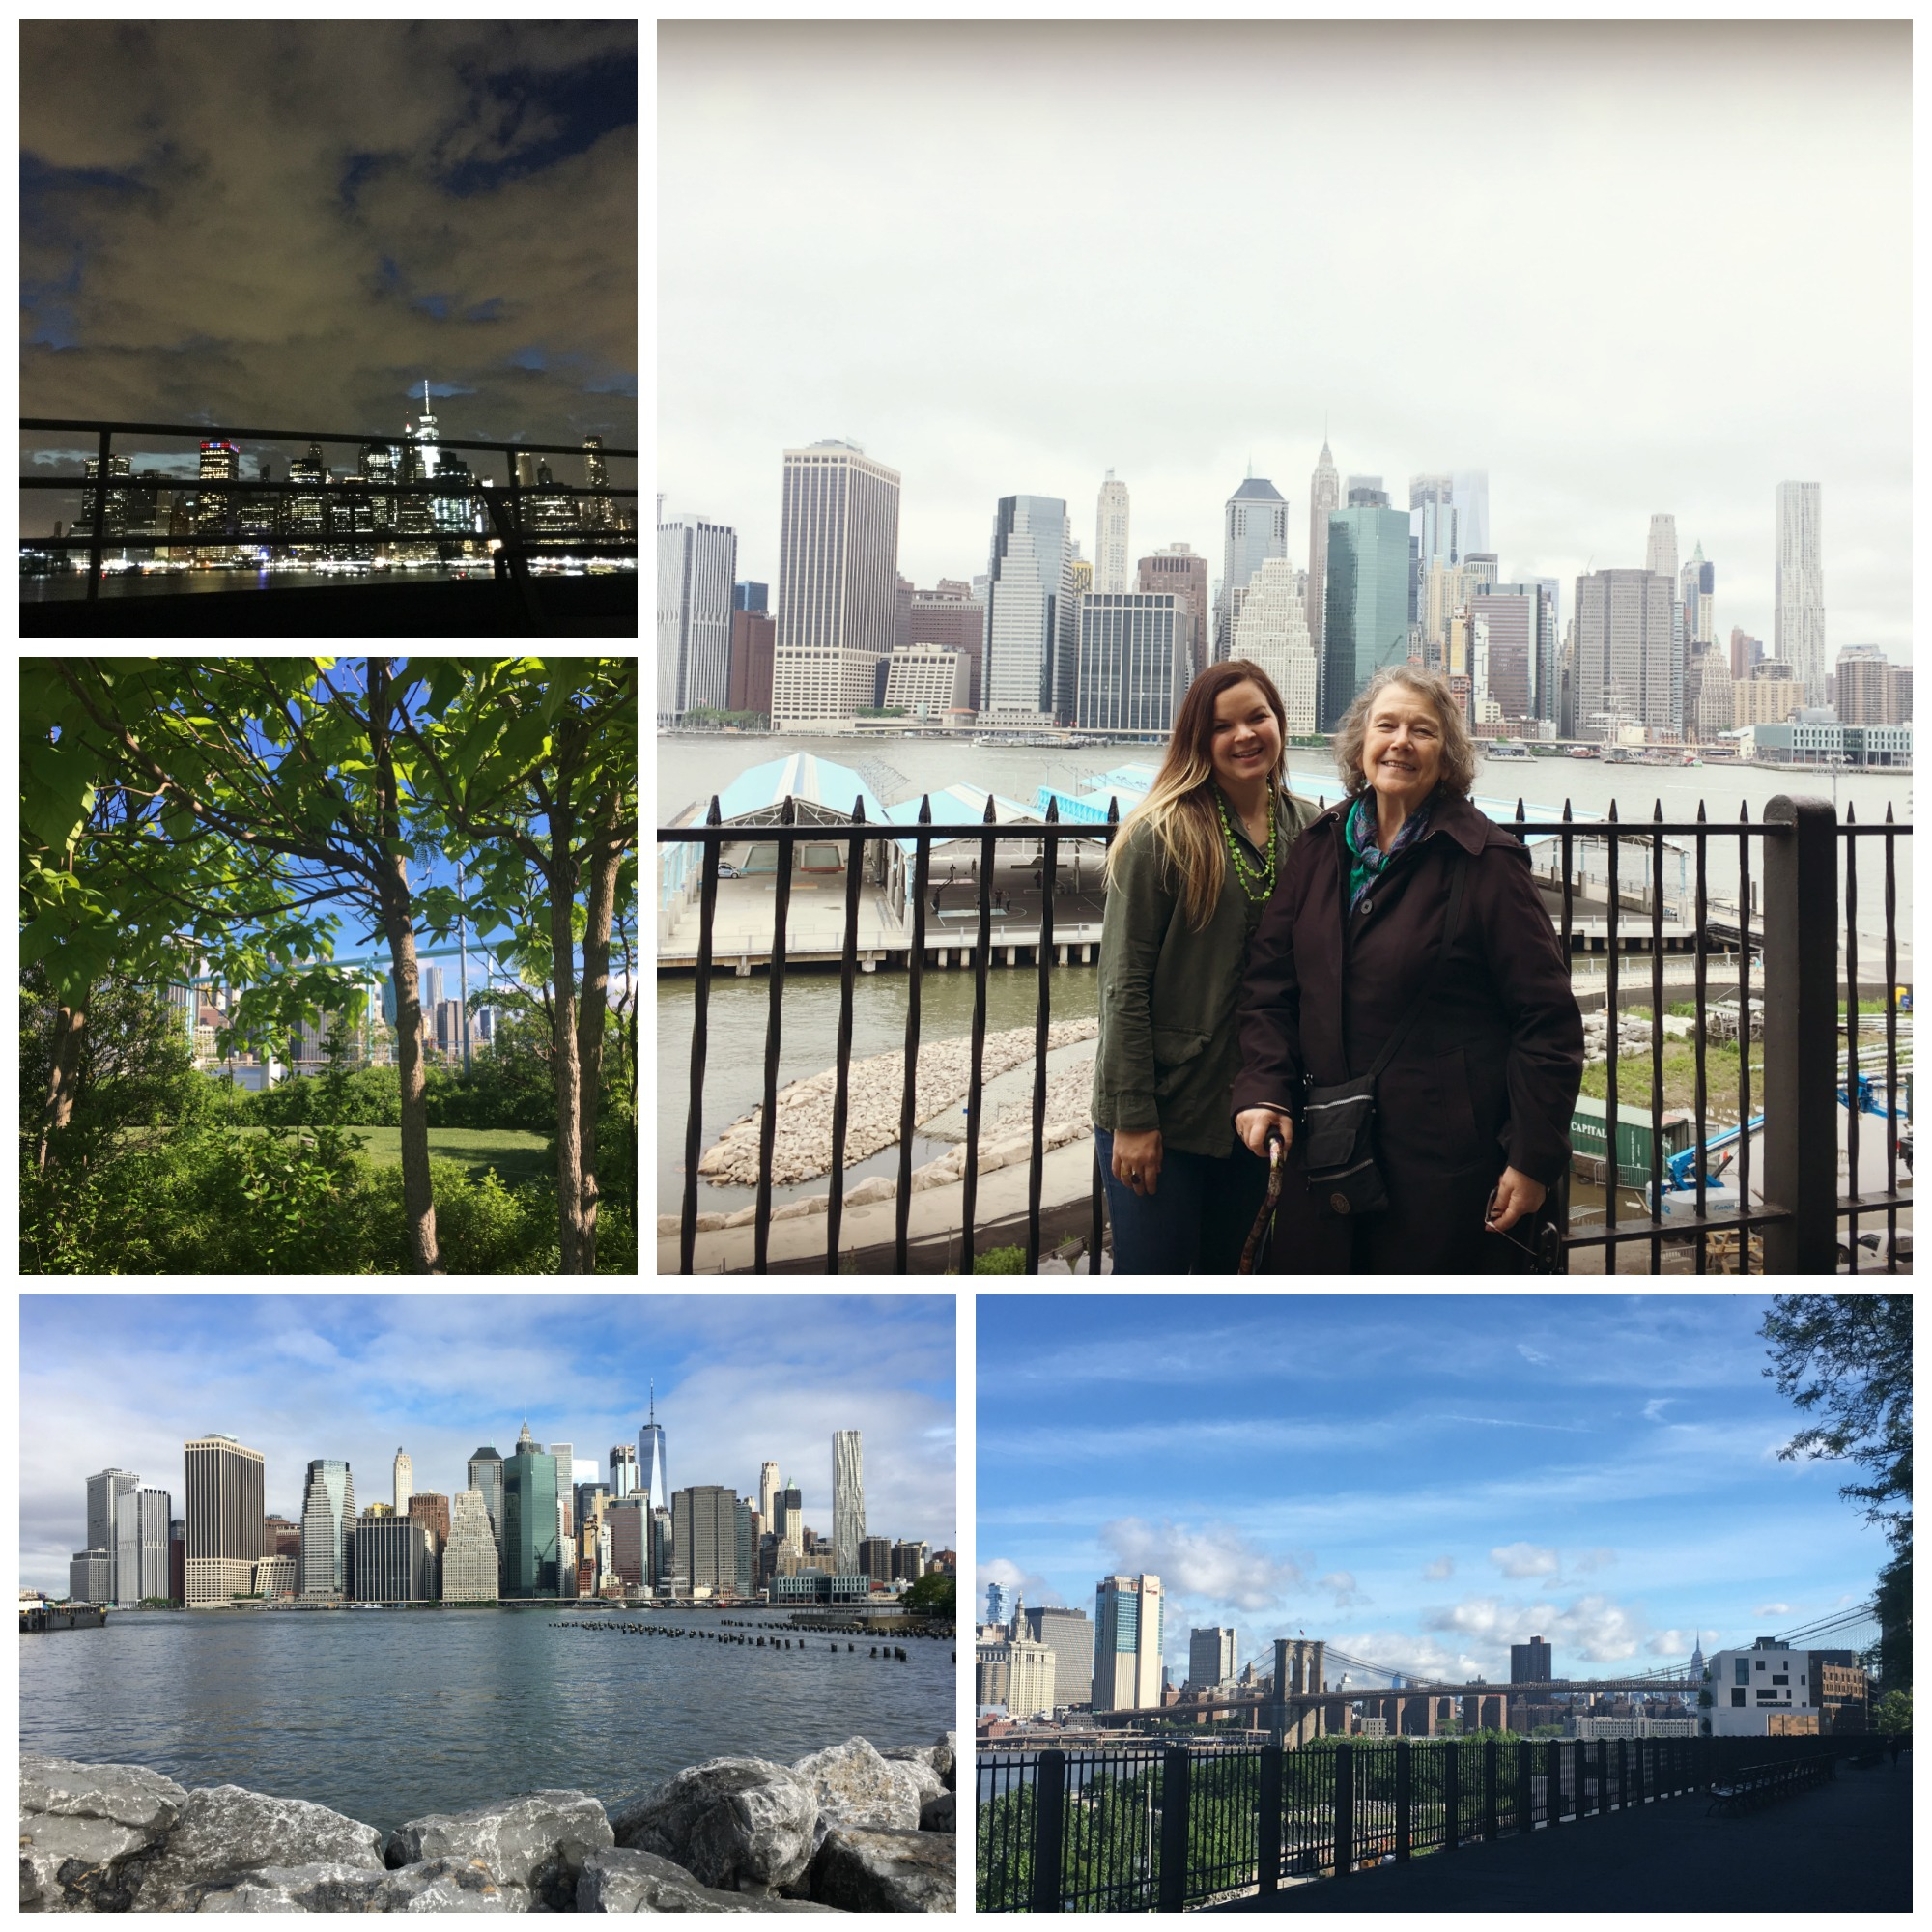 Clockwise: view of Manhattan from the roof deck, with DG on the Brooklyn Heights Promenade, view of Manhattan from Pier Park, garden on Pier 6.